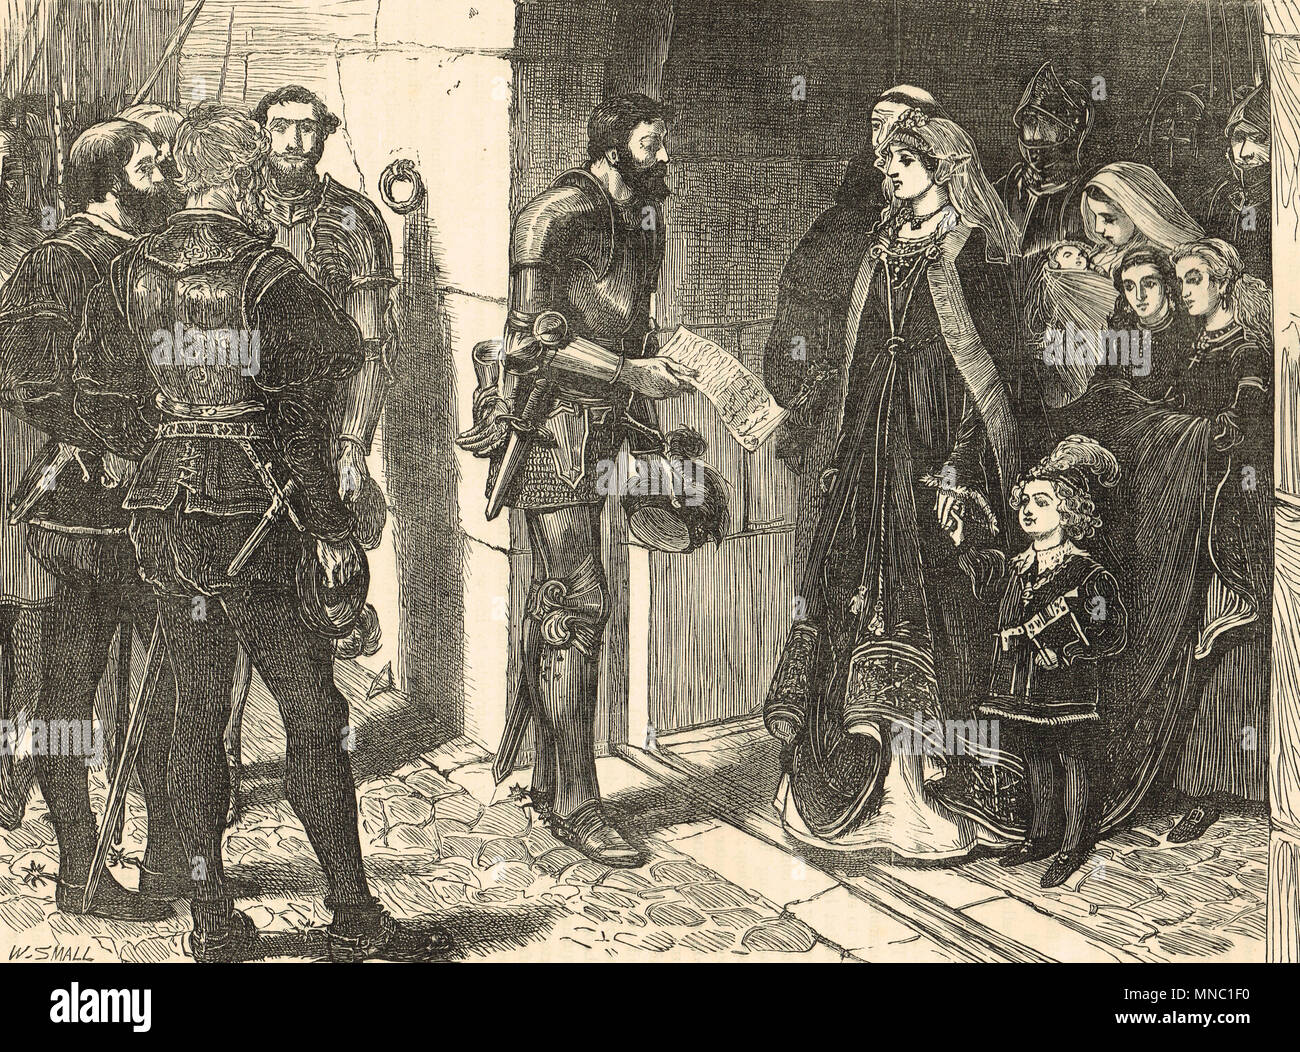 Margaret Tudor, regent of Scotland, refusing to surrender her children, Stirling Castle, 1515 - Stock Image